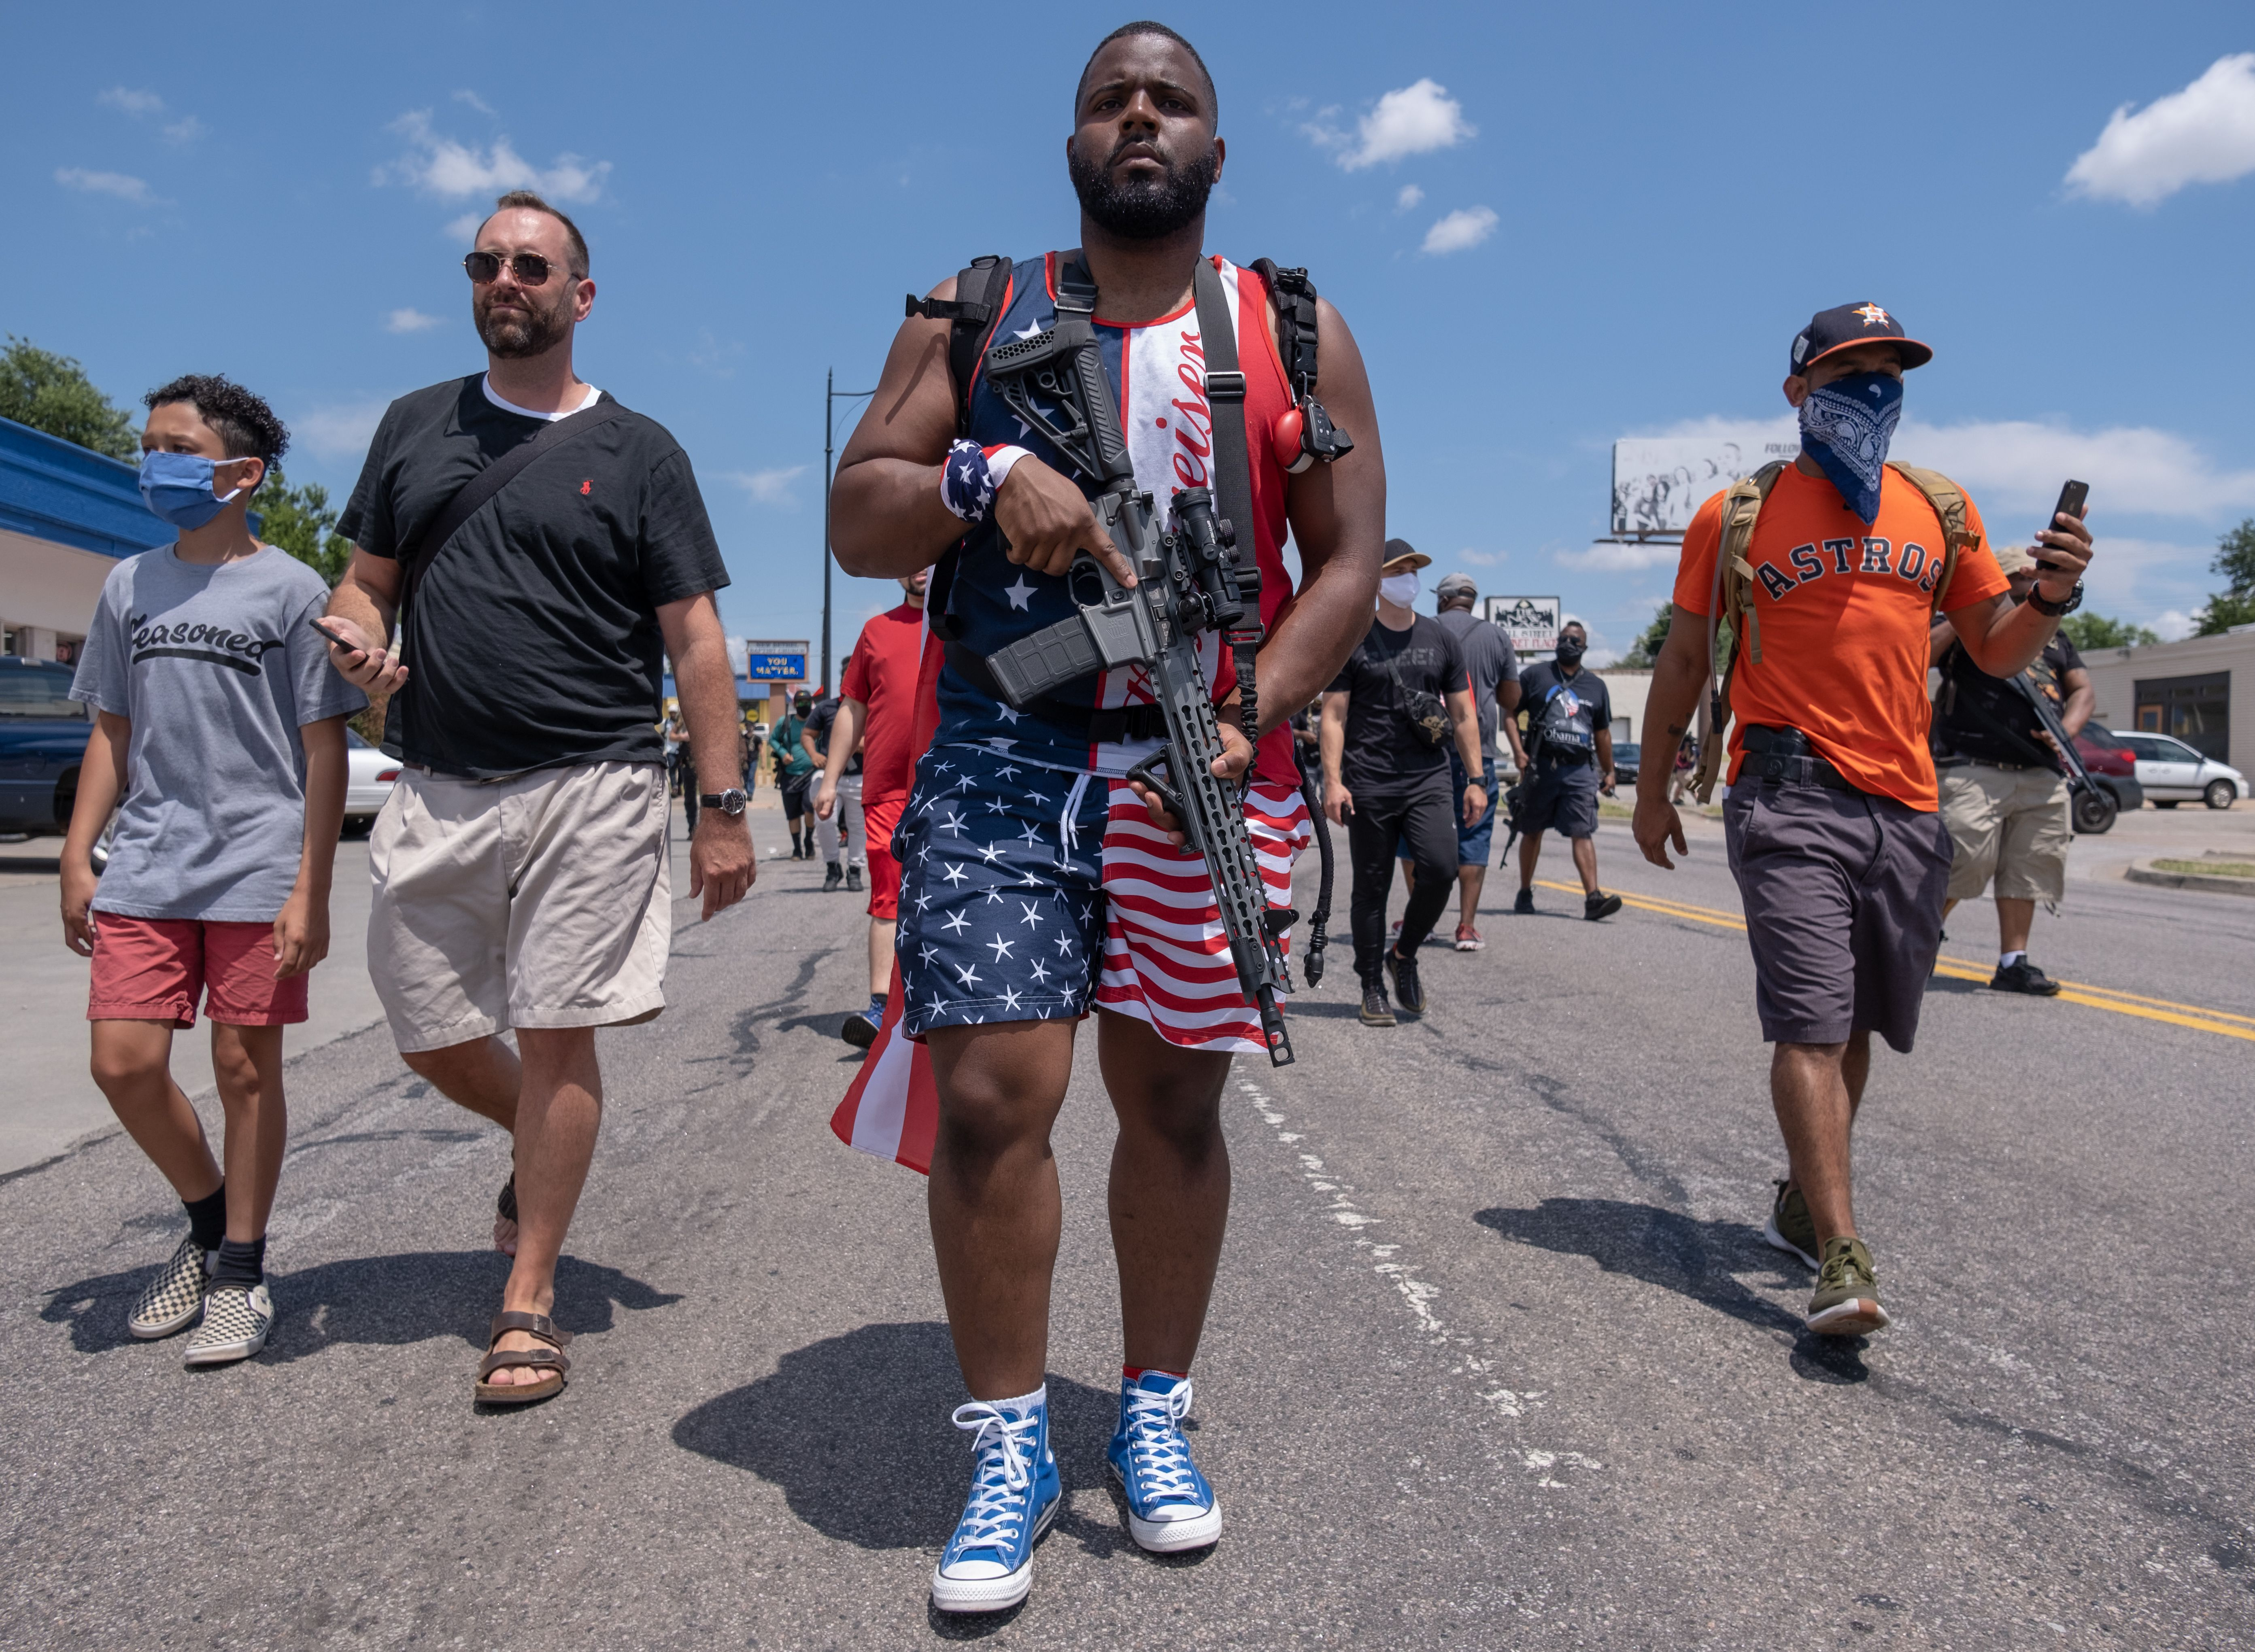 Black gun owners take part in a rally in support of the Second Amendment in Oklahoma City on June 20, 2020.